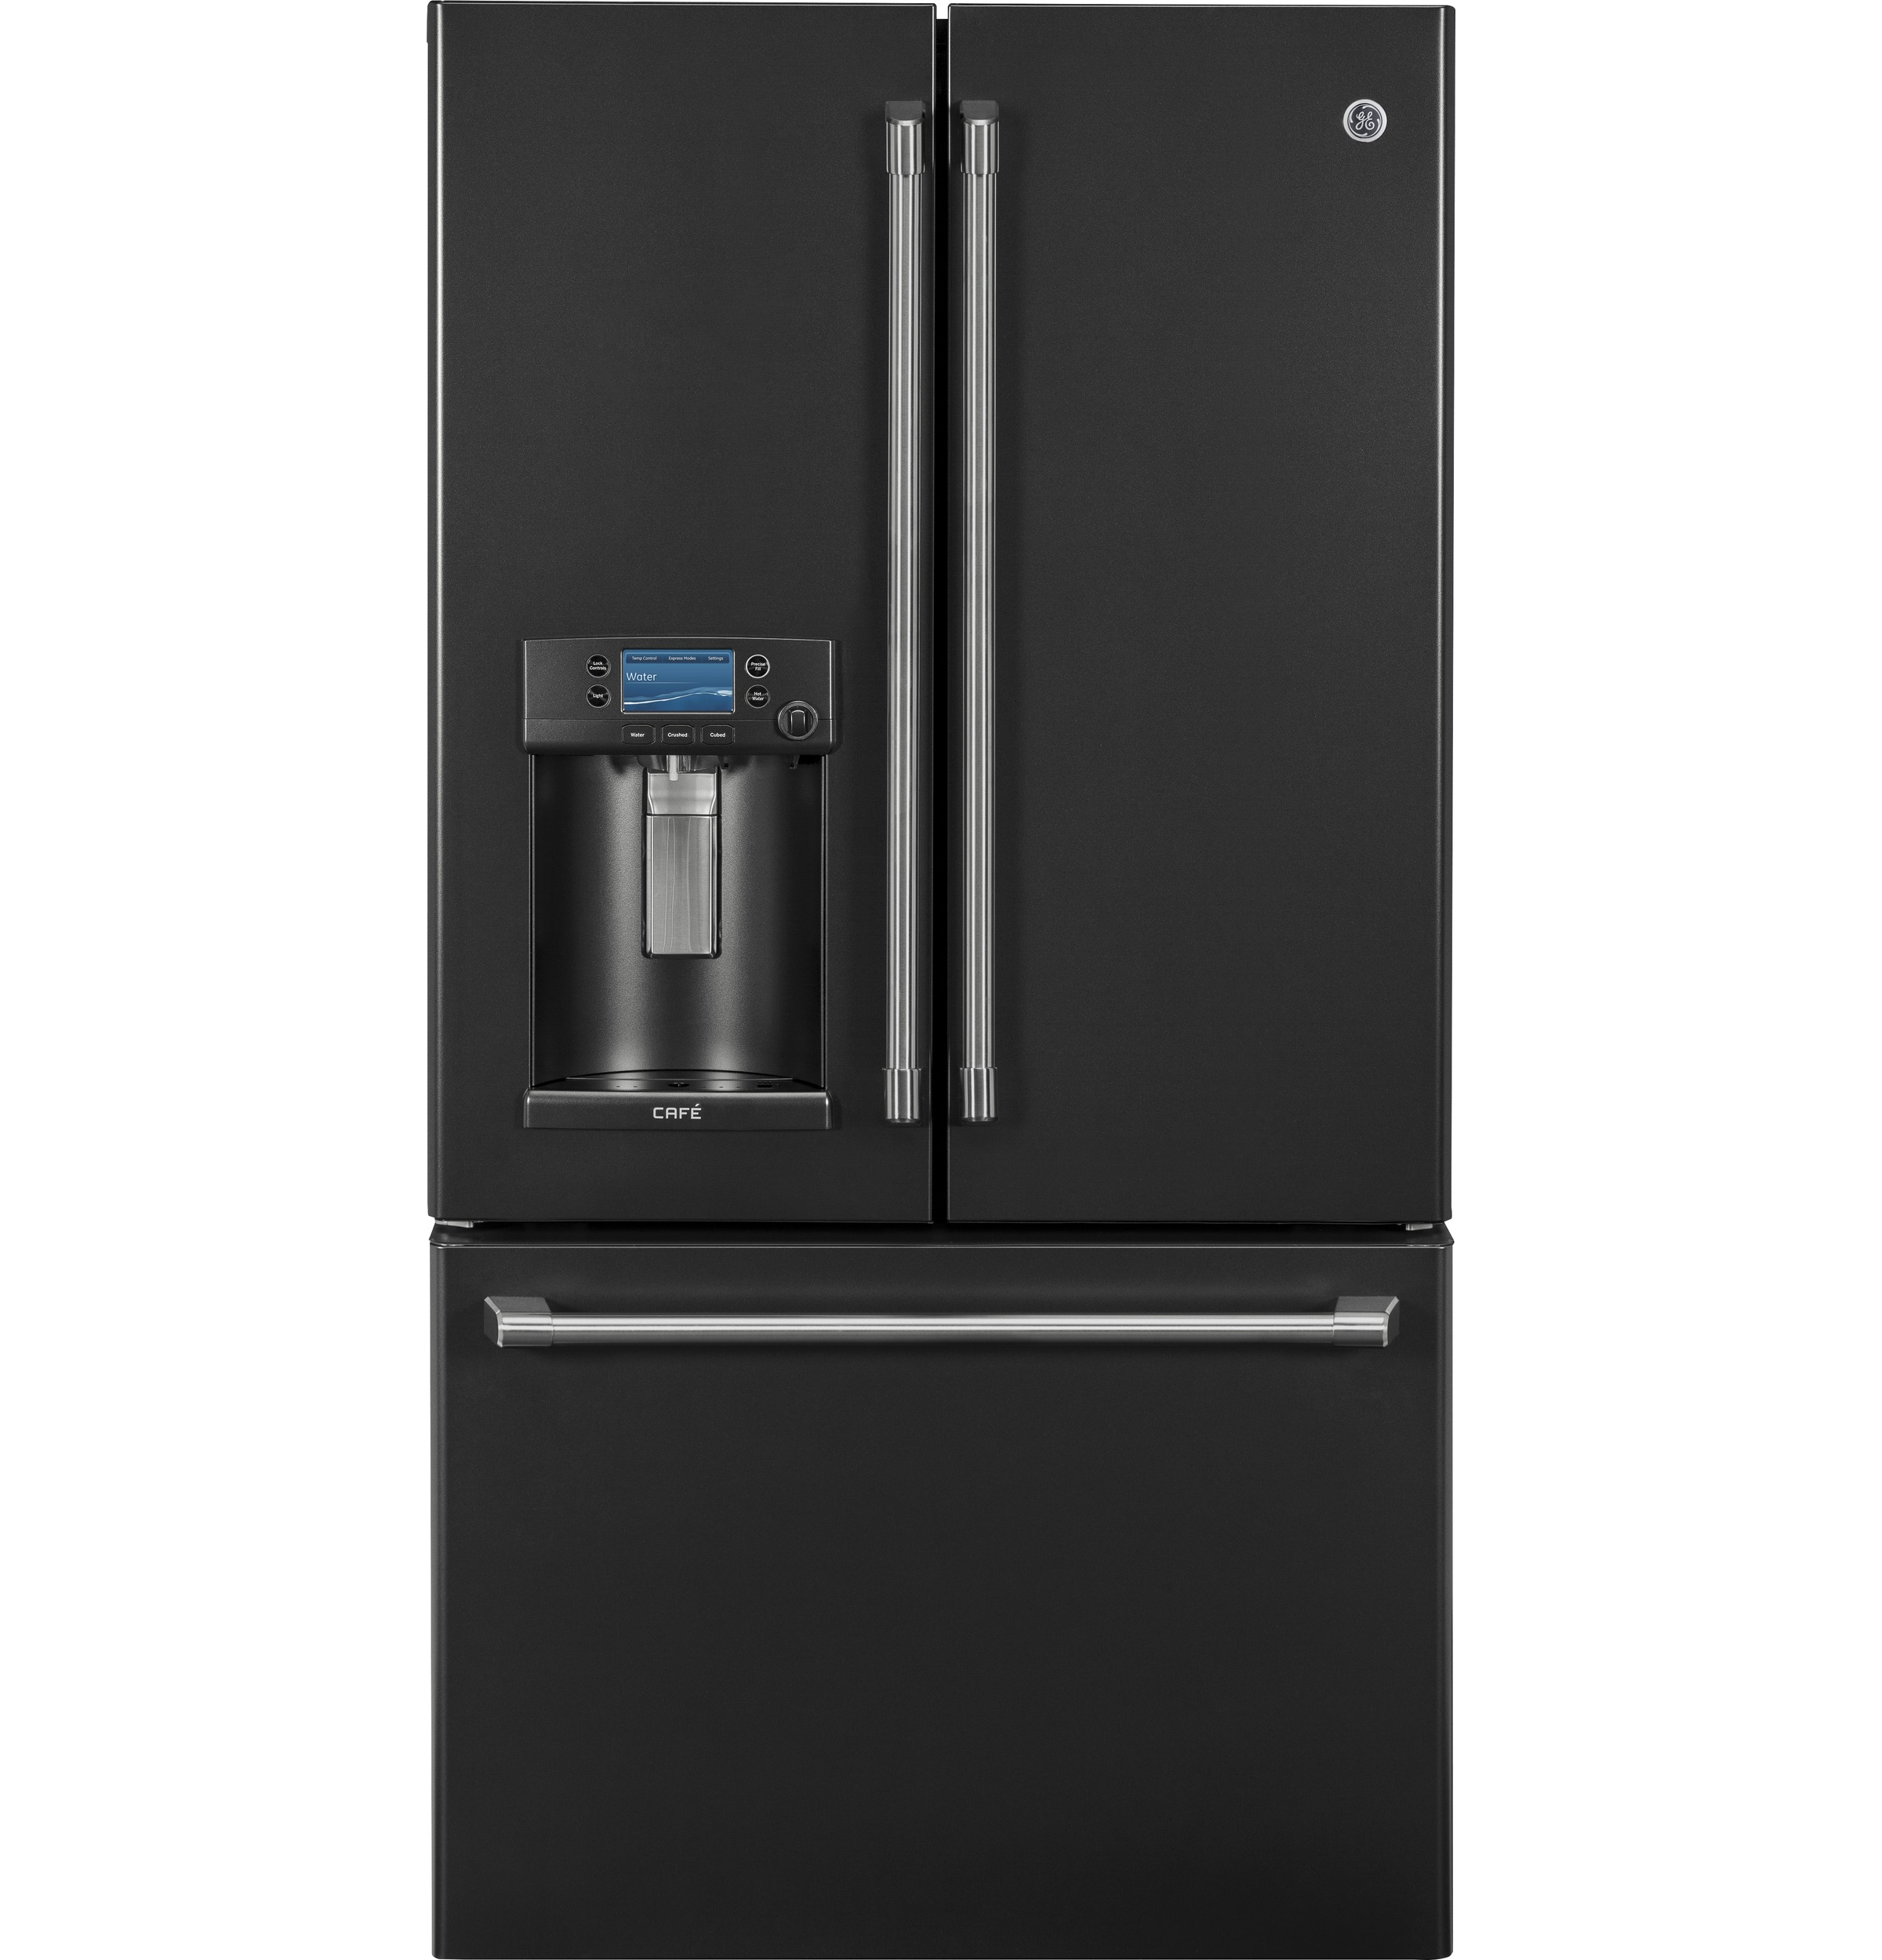 GE Café™ Series ENERGY STAR® 27.8 Cu. Ft. French-Door Refrigerator with Keurig® K-Cup® Brewing